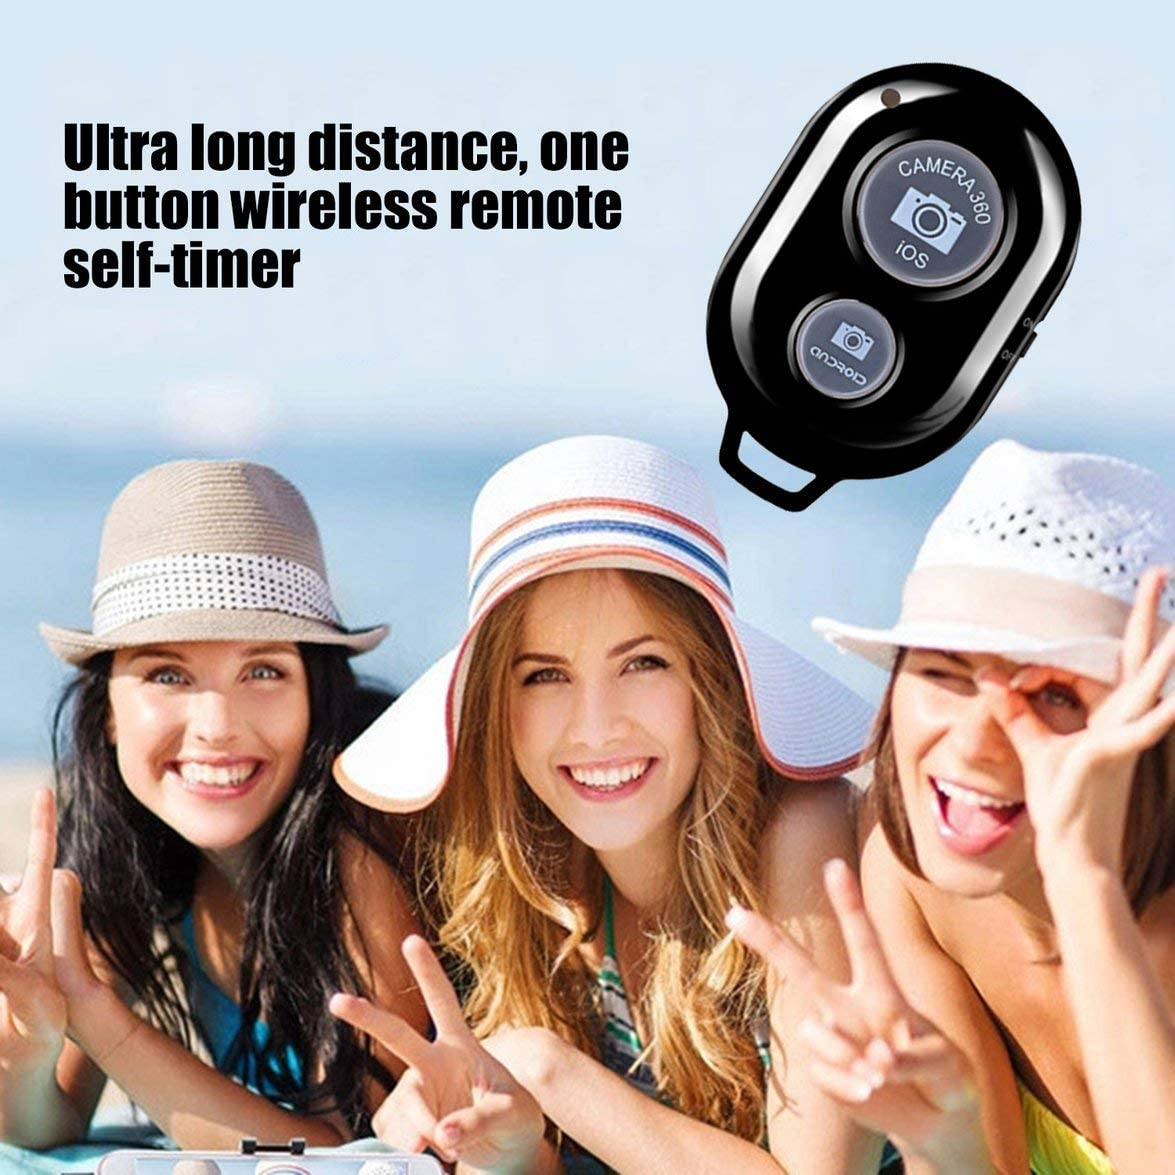 Remote Control Camera Selfie Shutter Stick for iPhone Android Windows Camera Remote Controller Self-Timer Black